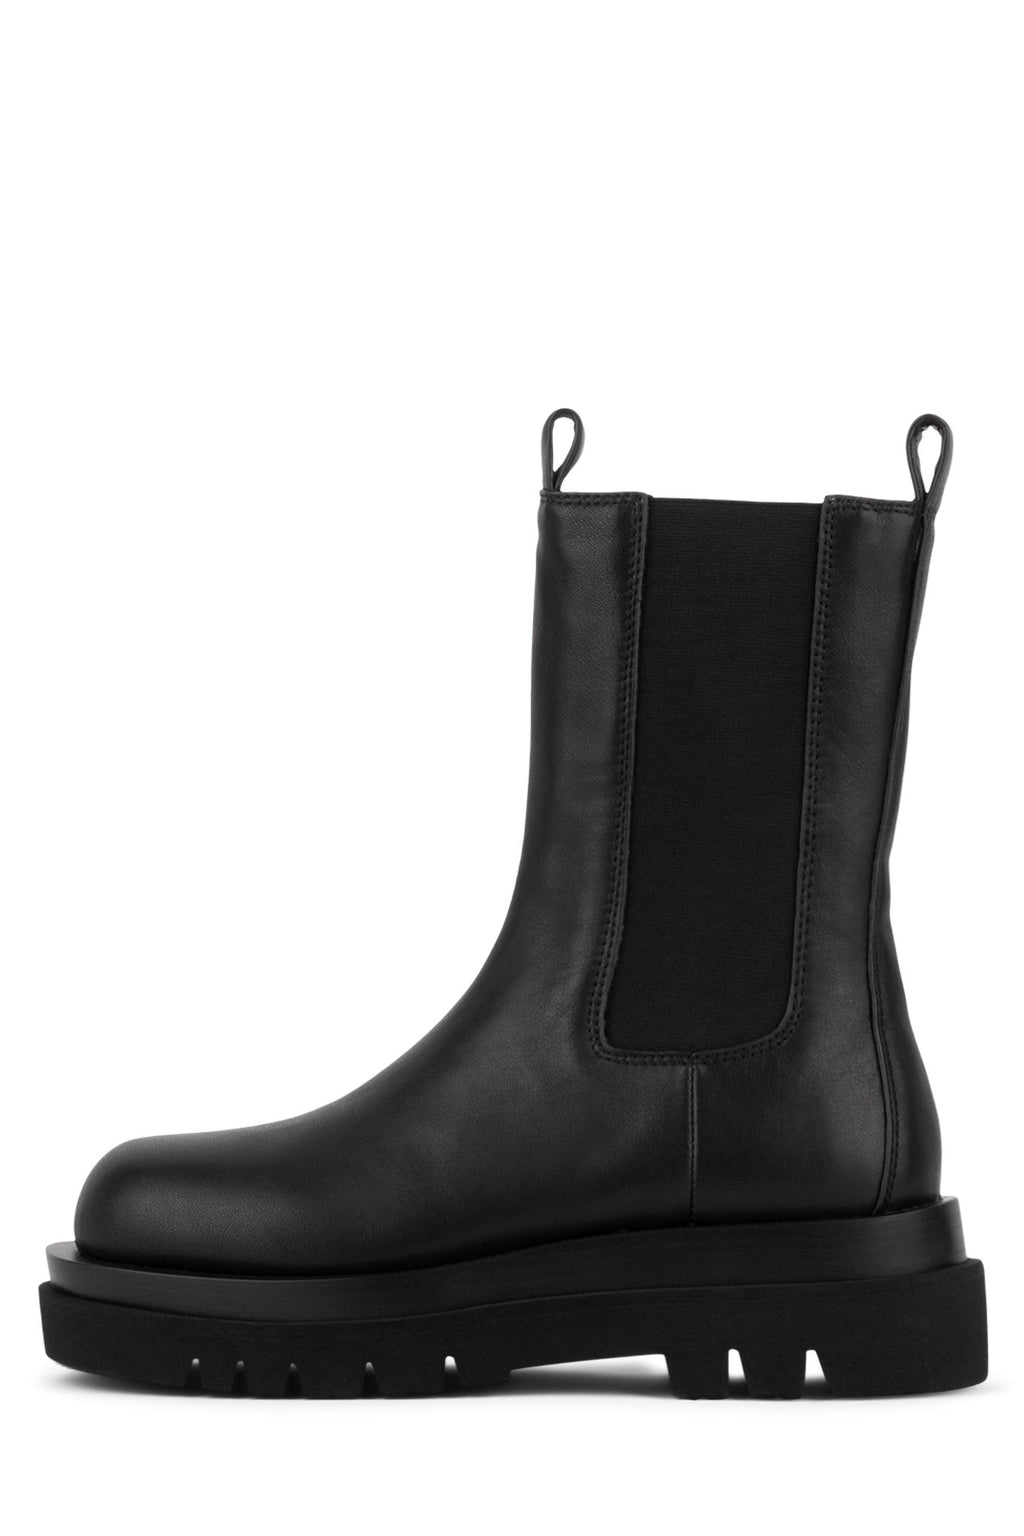 TANKED Platform Boot Jeffrey Campbell Black 6